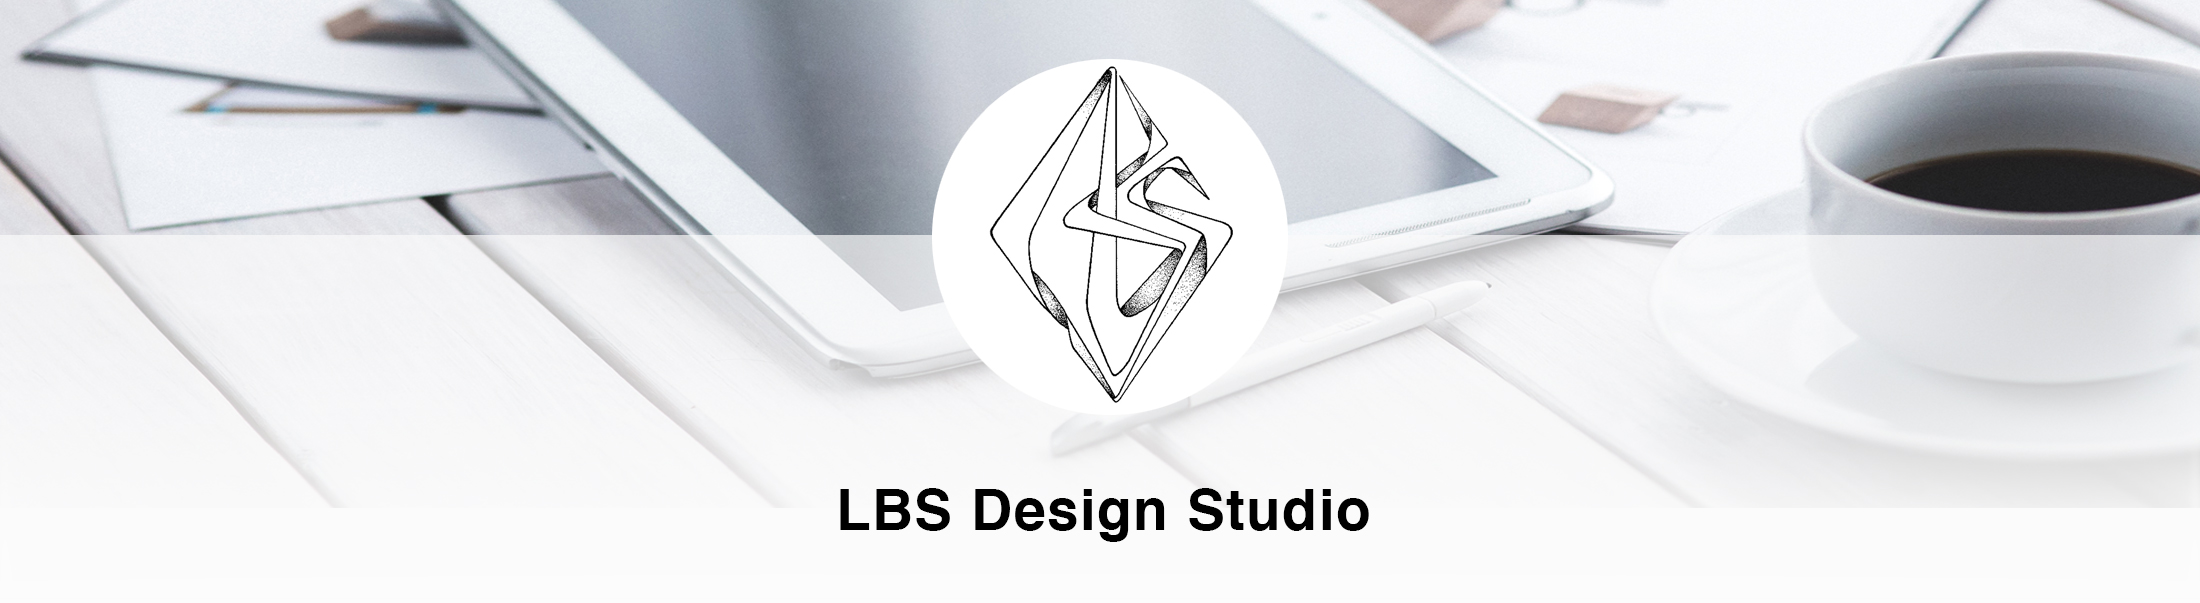 Web Design | Website Design | SEO | St Pete | Clearwater | Tampa | LBS Design Studio 33714